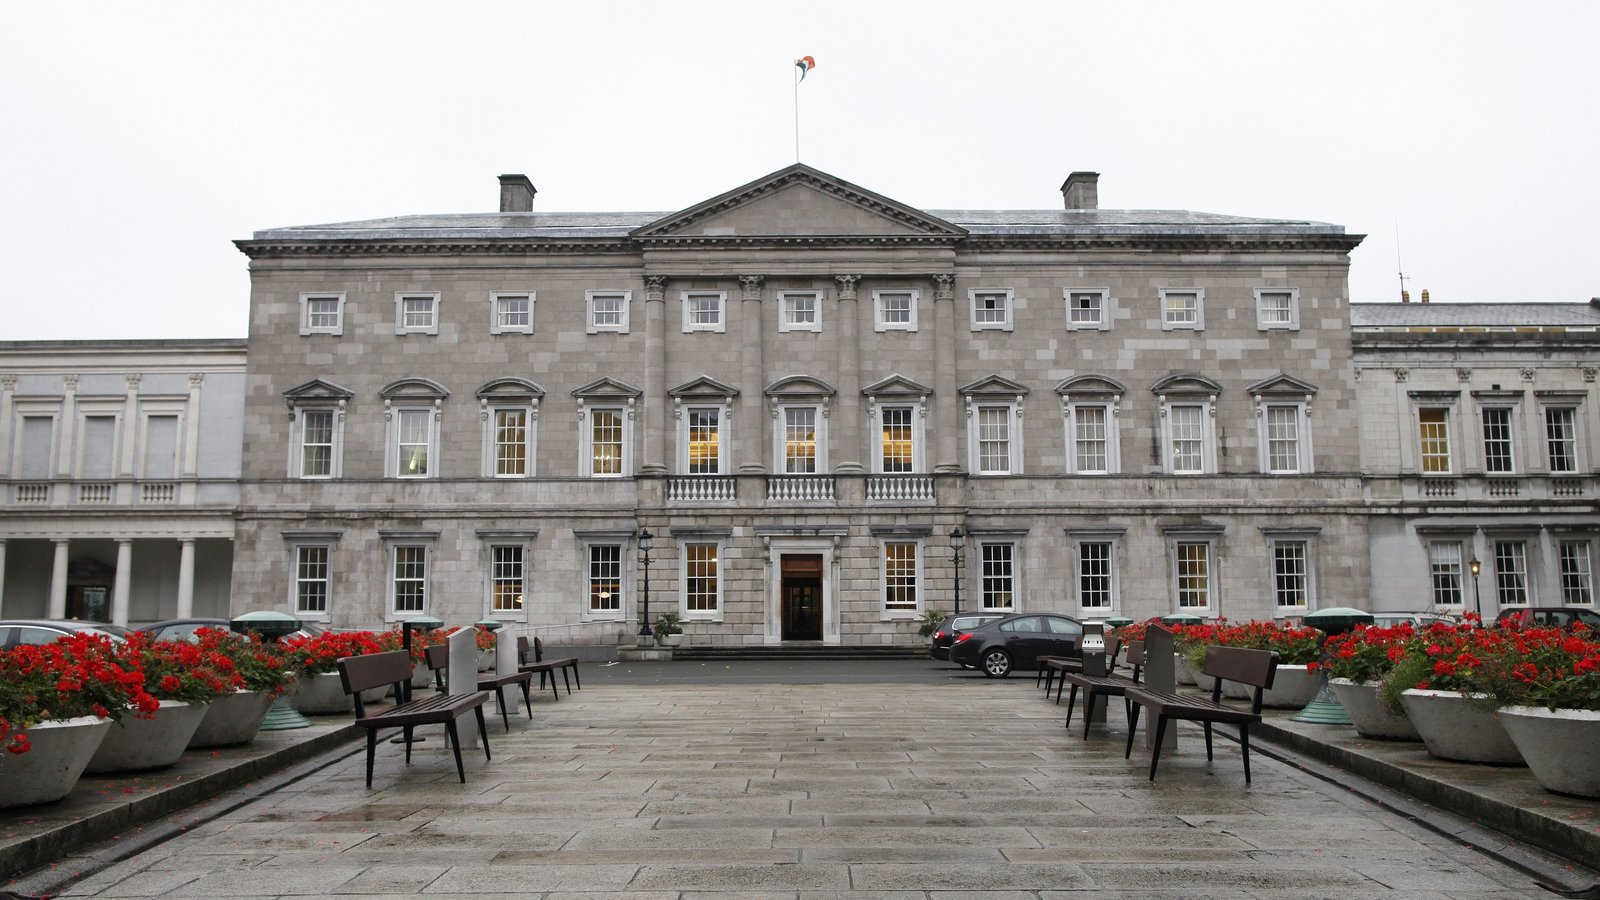 Two-year low in support for FF, opinion poll suggests